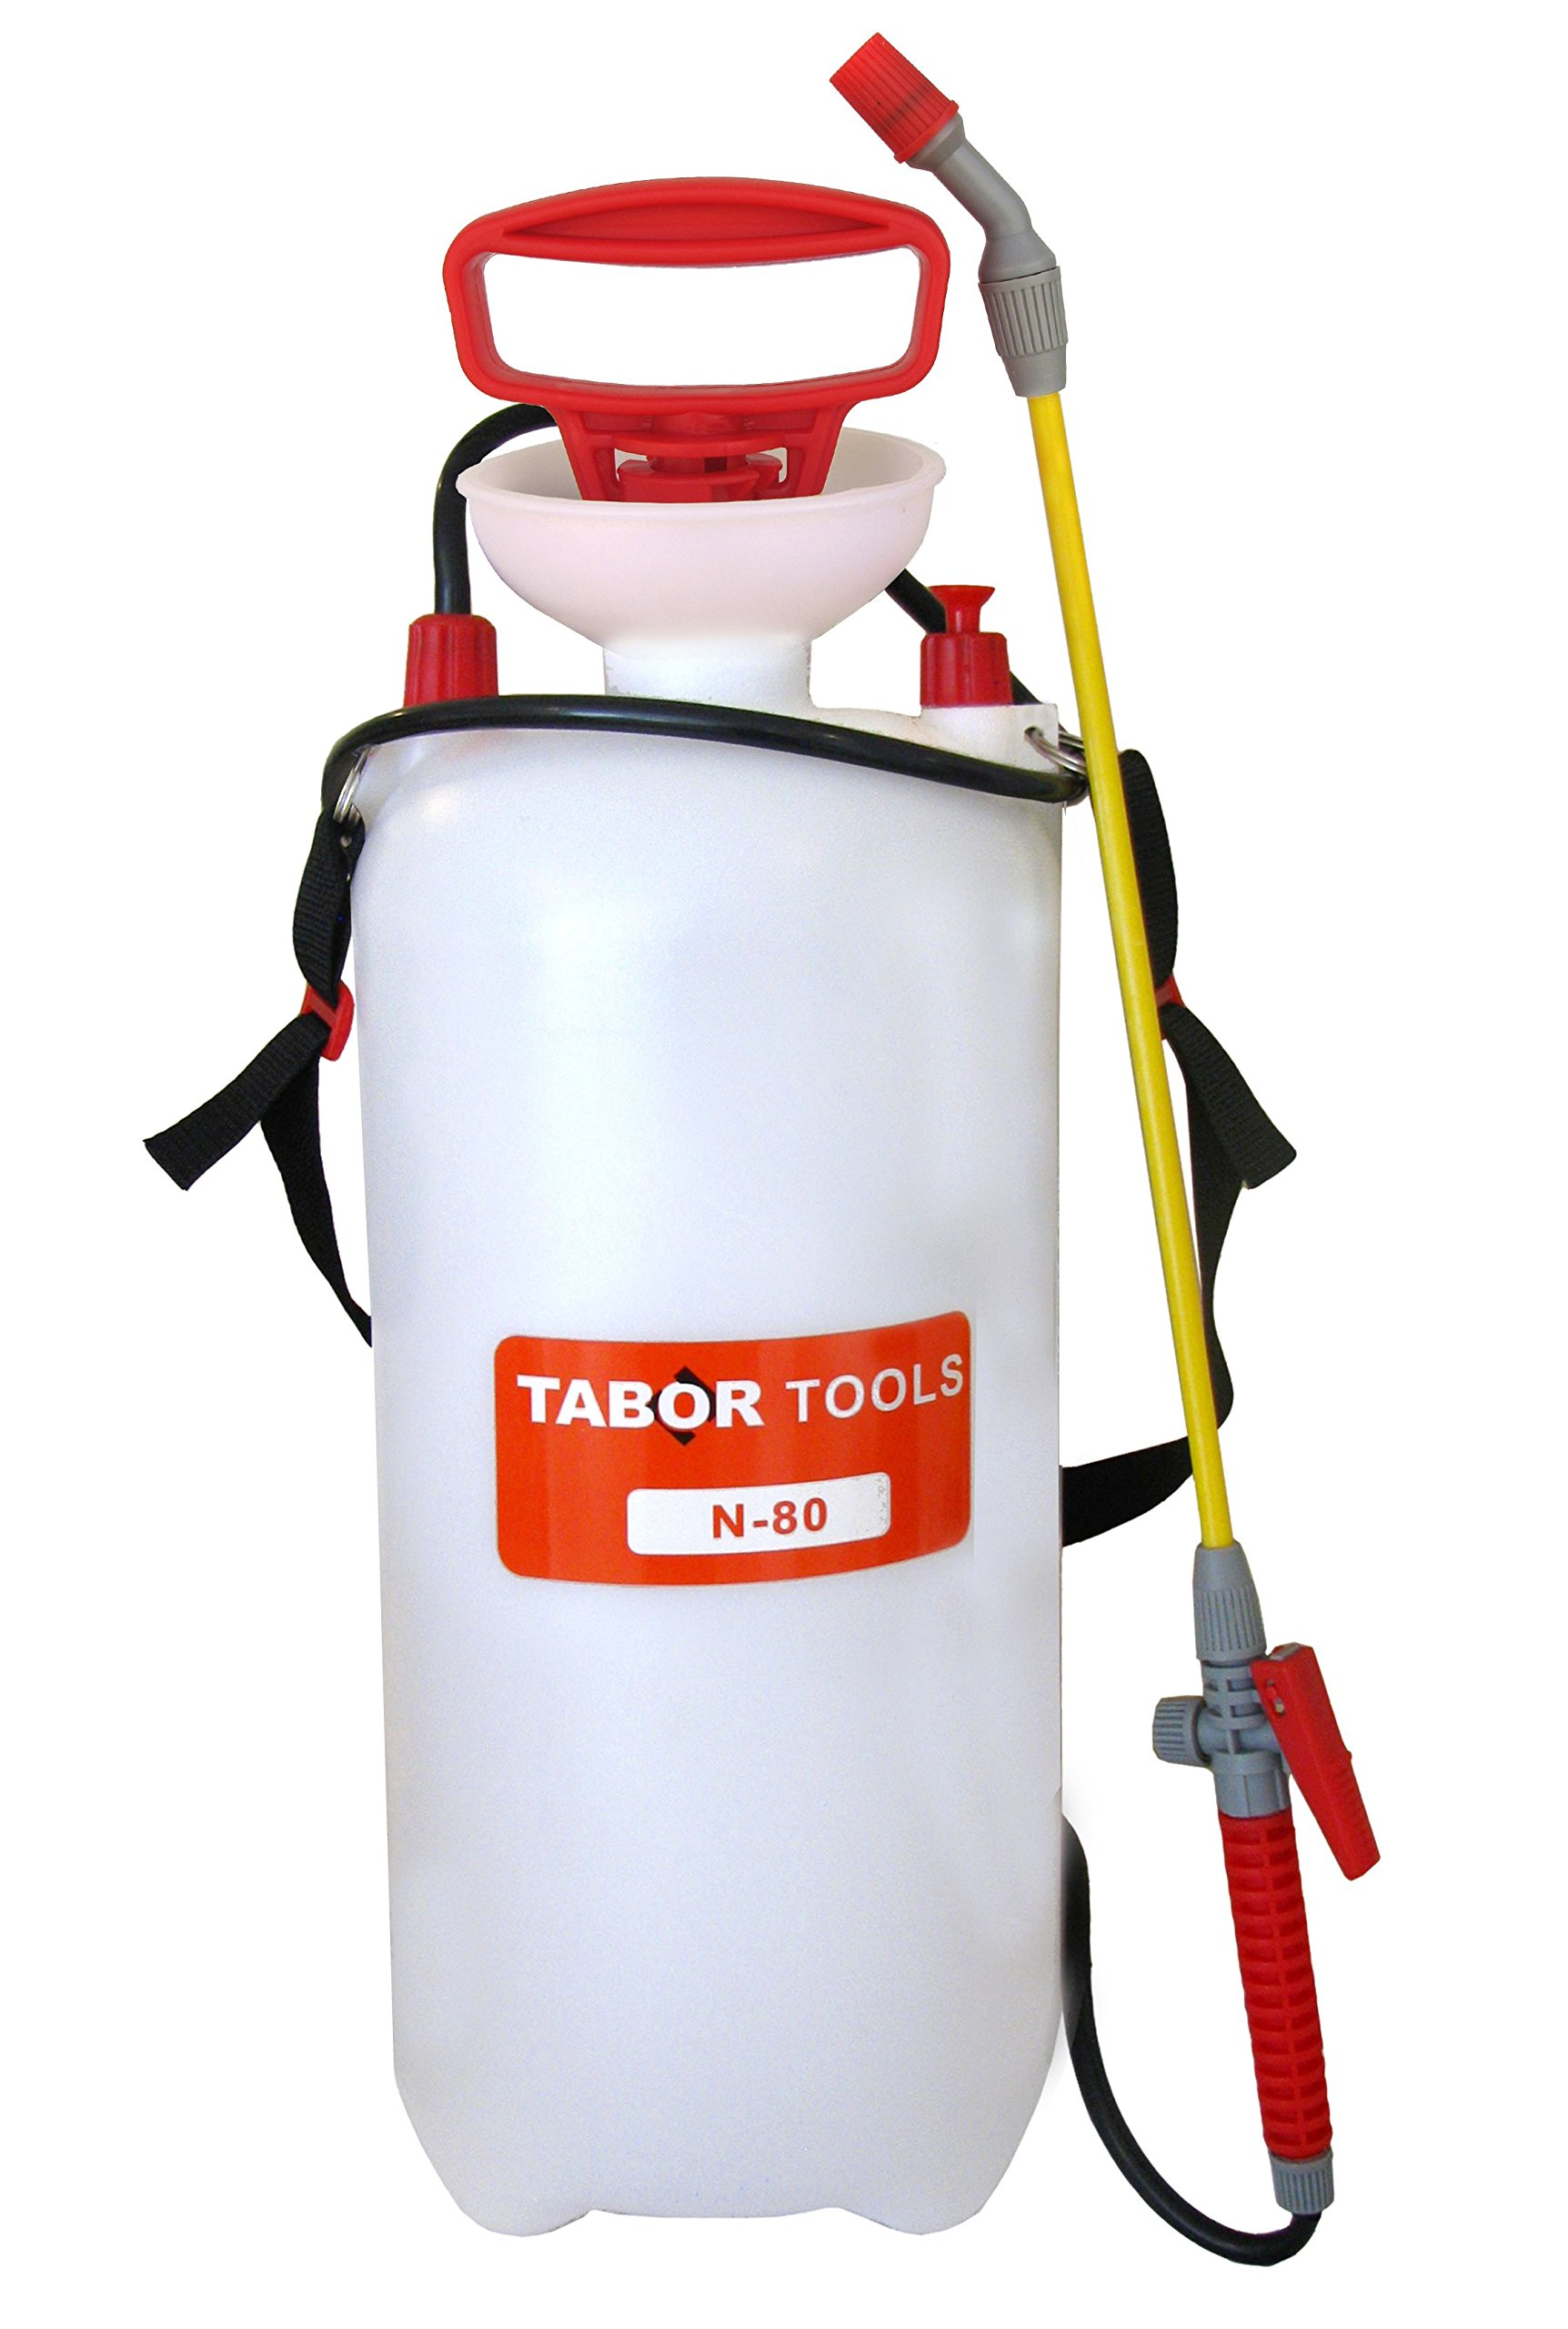 TABOR TOOLS N-80, 2-Gallon Lawn and Garden Pump Pressure Sprayer for Herbicides, Pesticides, Fertilizers, Mild Cleaning Solutions and Bleach, includes Shoulder Strap.